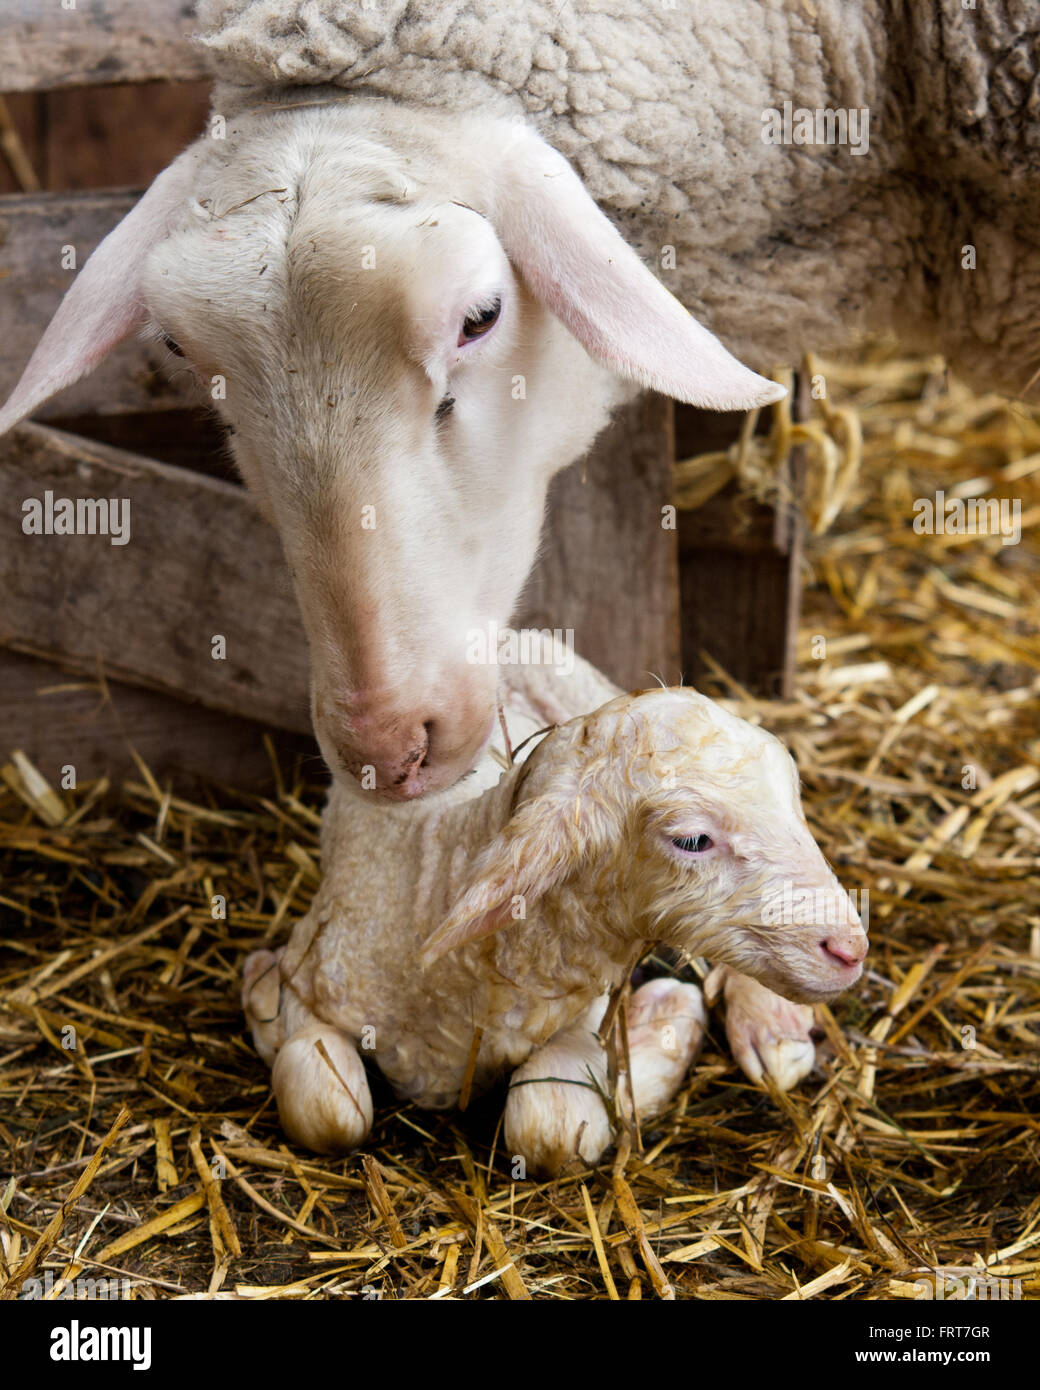 First encounter. Ewe gets the first look at her newborn lamb - Stock Image